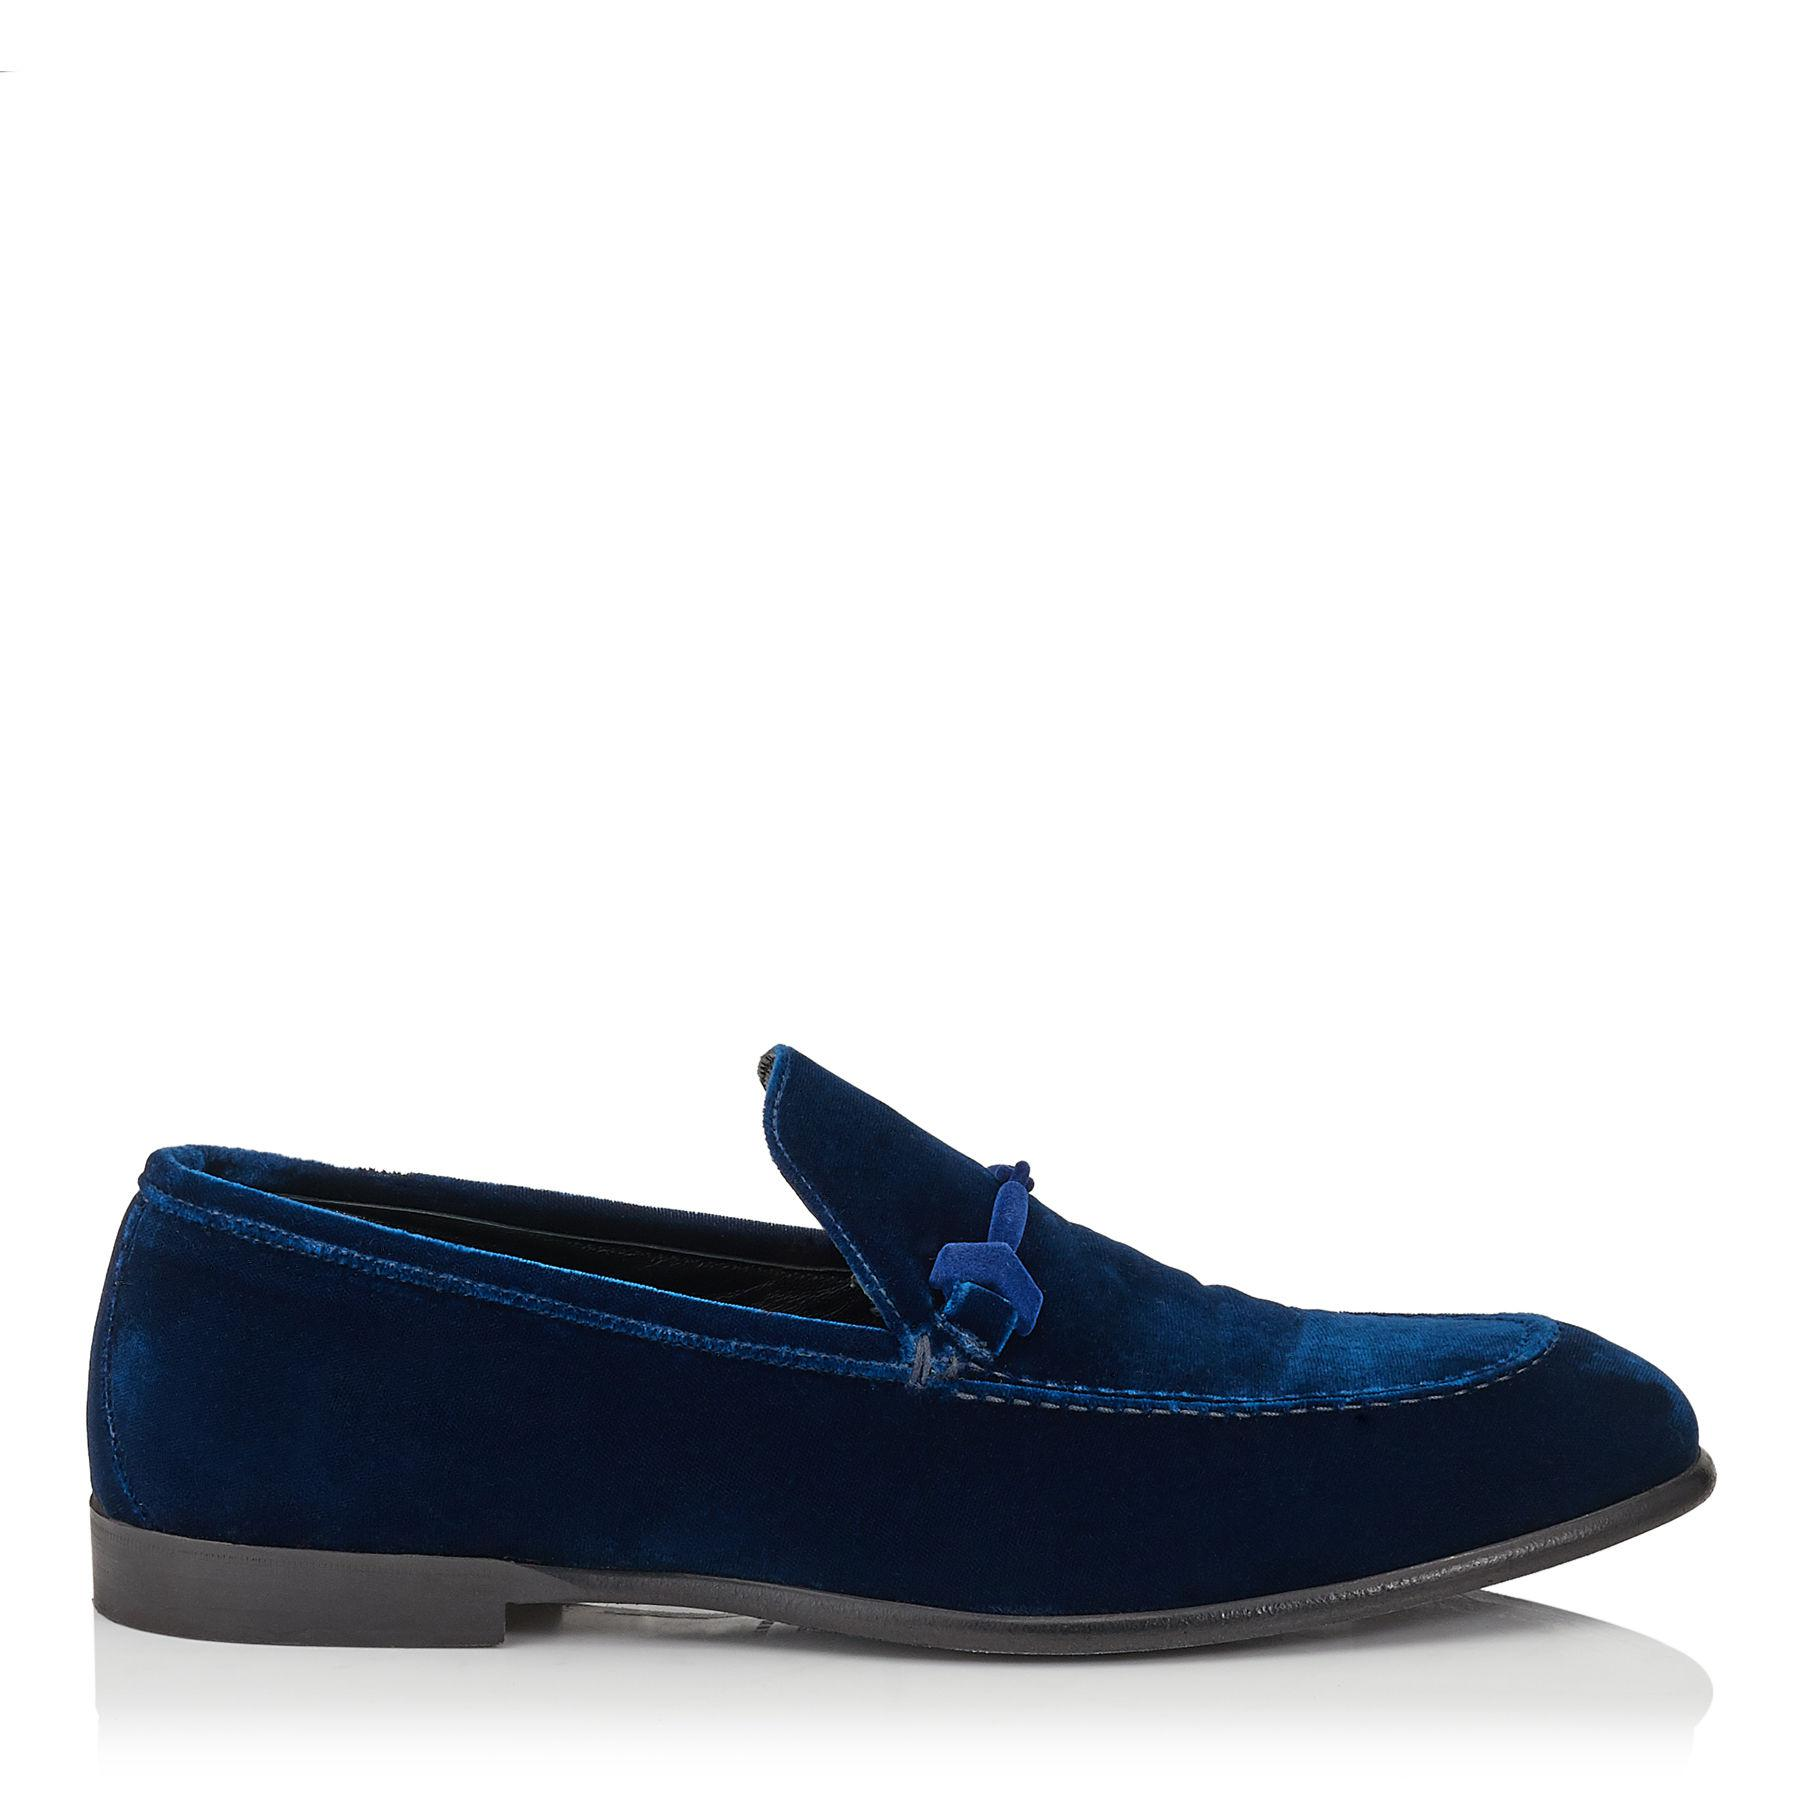 Deals For Sale Free Shipping Best Prices Slip-on shoes MARTI velvet Metal decorations black Jimmy Choo London 4DUjfyAb